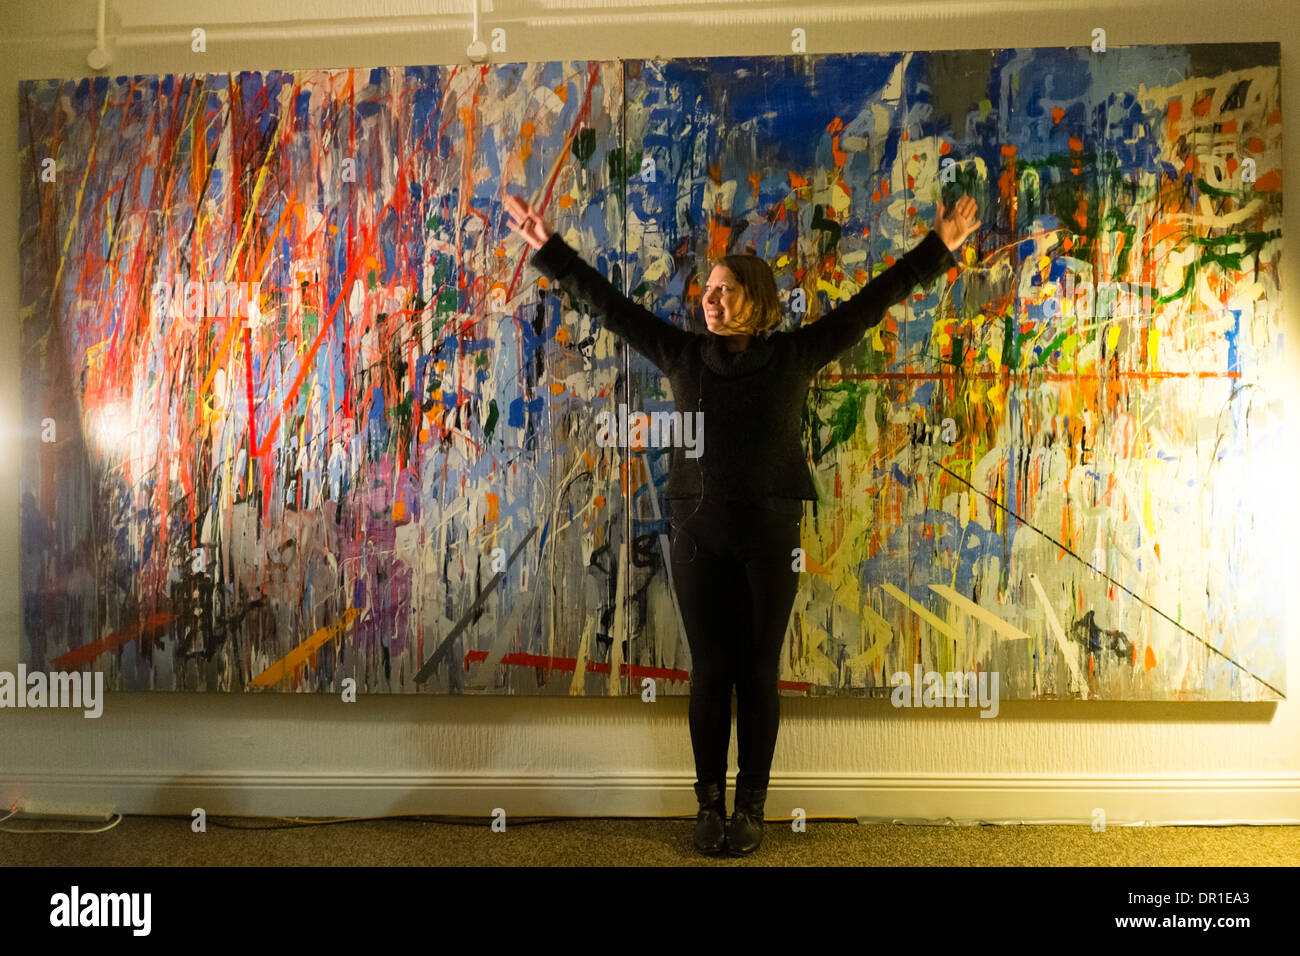 Performance Art - a woman artist performing live art in front of abstract painting a gallery UK - Stock Image